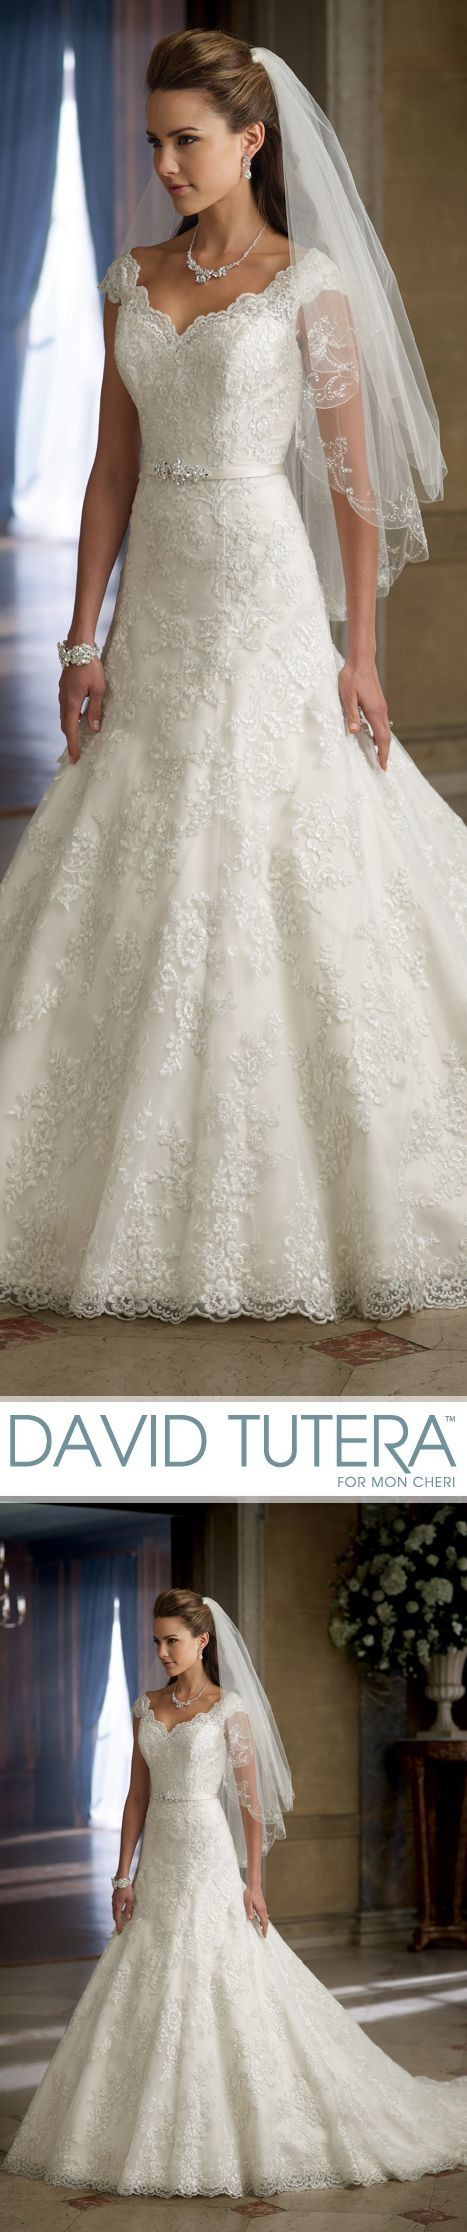 Style no marta wedding dresses collection all over